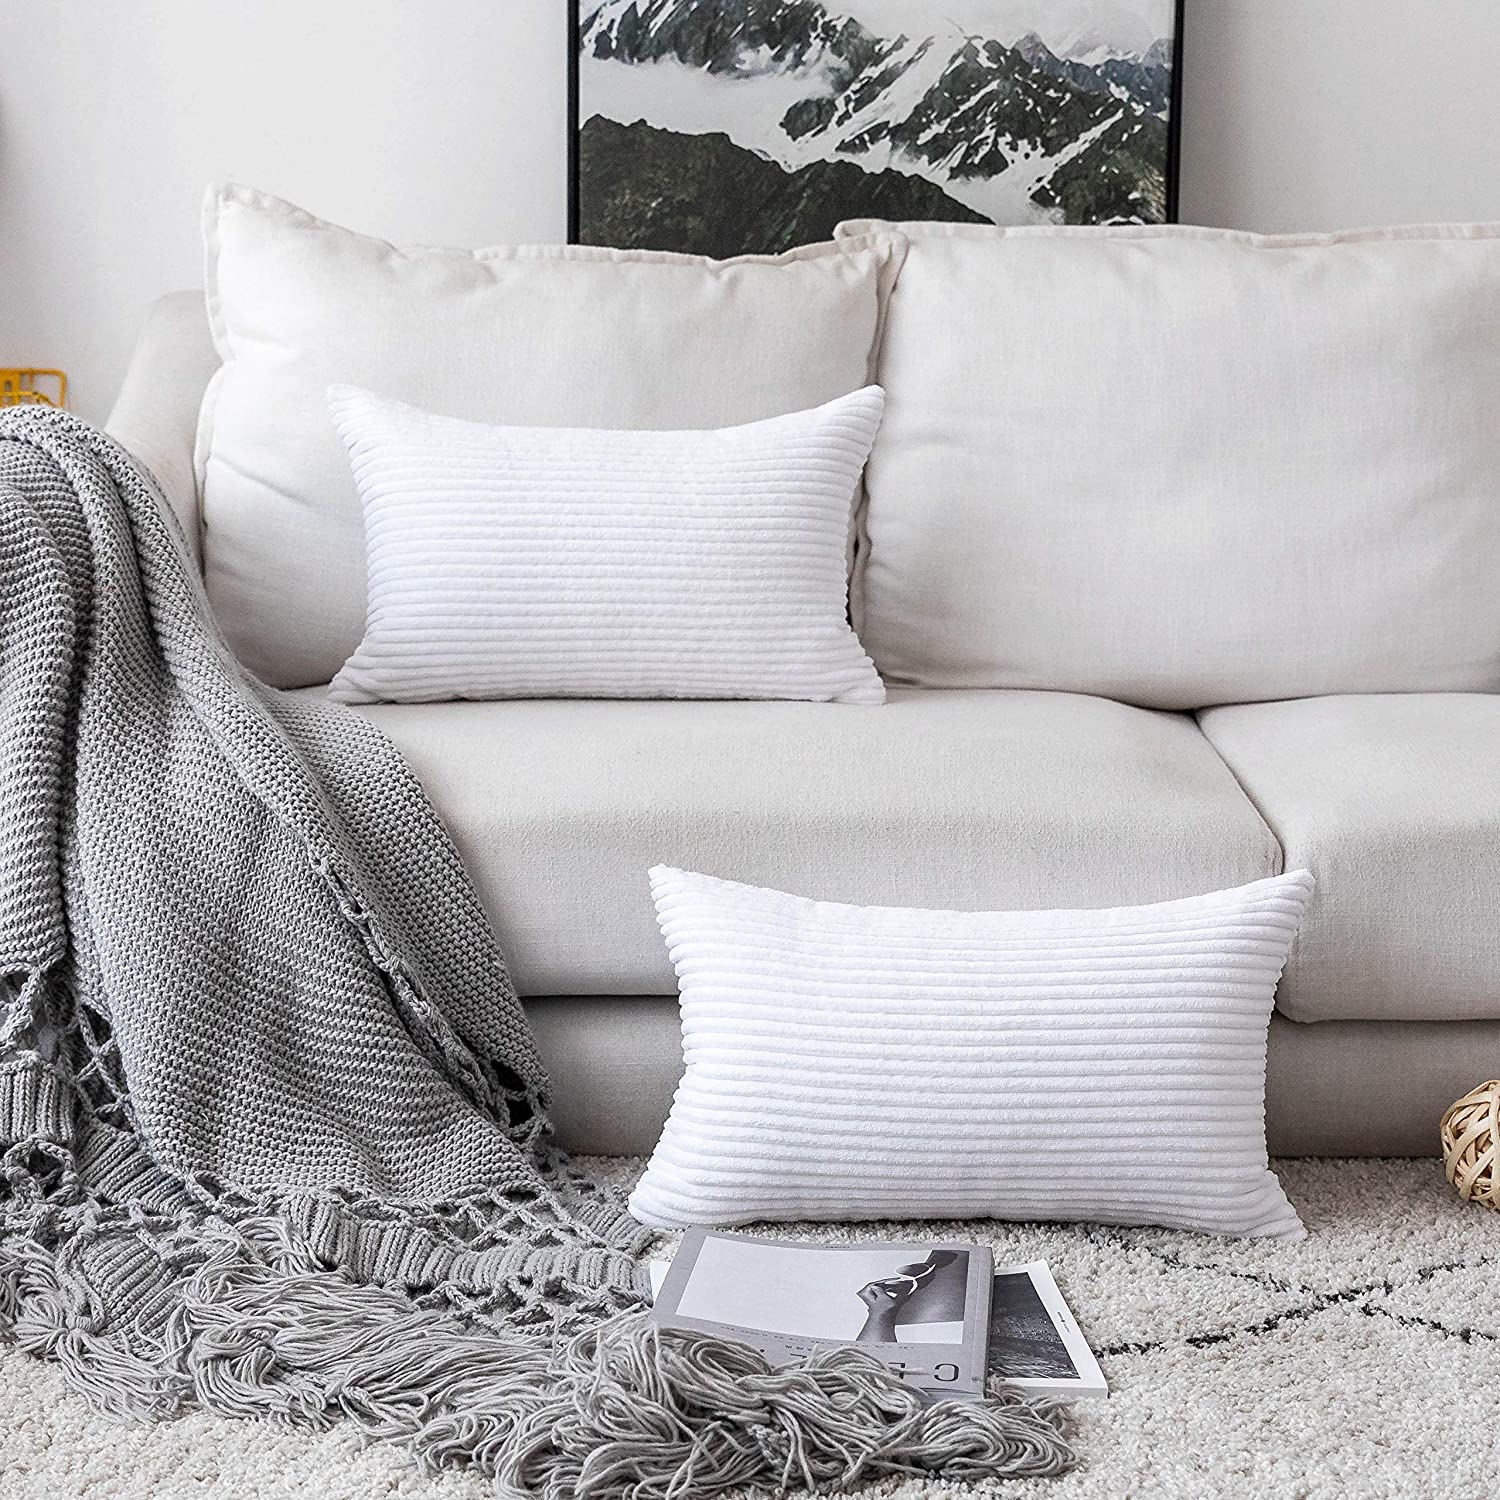 Home Brilliant Oblong Pillow Decorative Striped Corduroy Rectangle Cushion Cover Oblong Pillow Cover for Couch, 12 x 20 Inches, Set of 2, Pure White